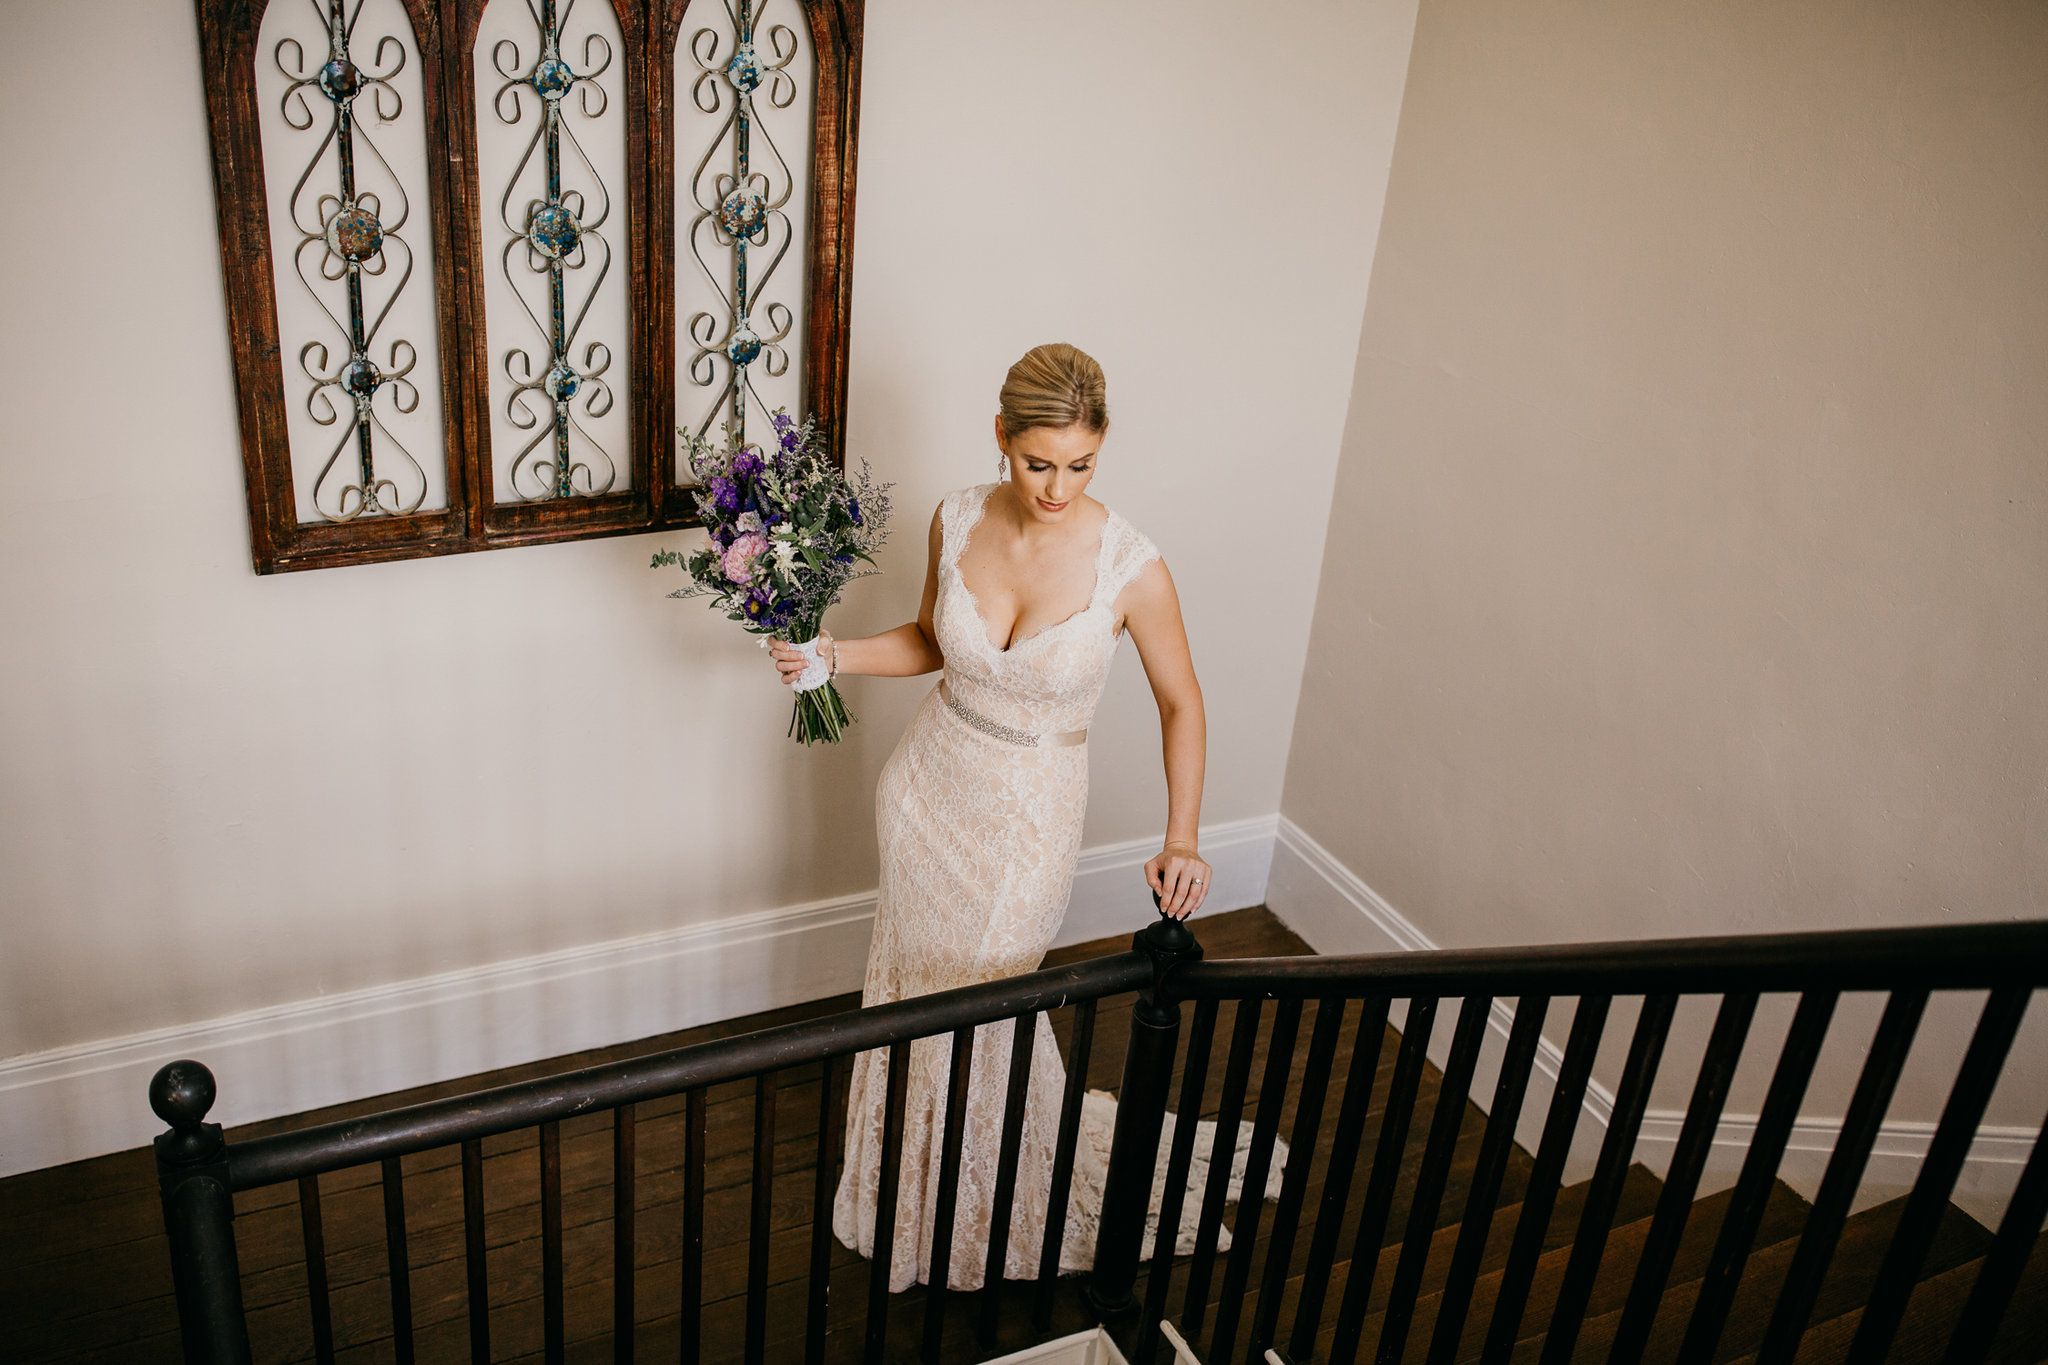 House of brides wedding dresses  Bride on our vintage staircase  The house and grounds  Pinterest